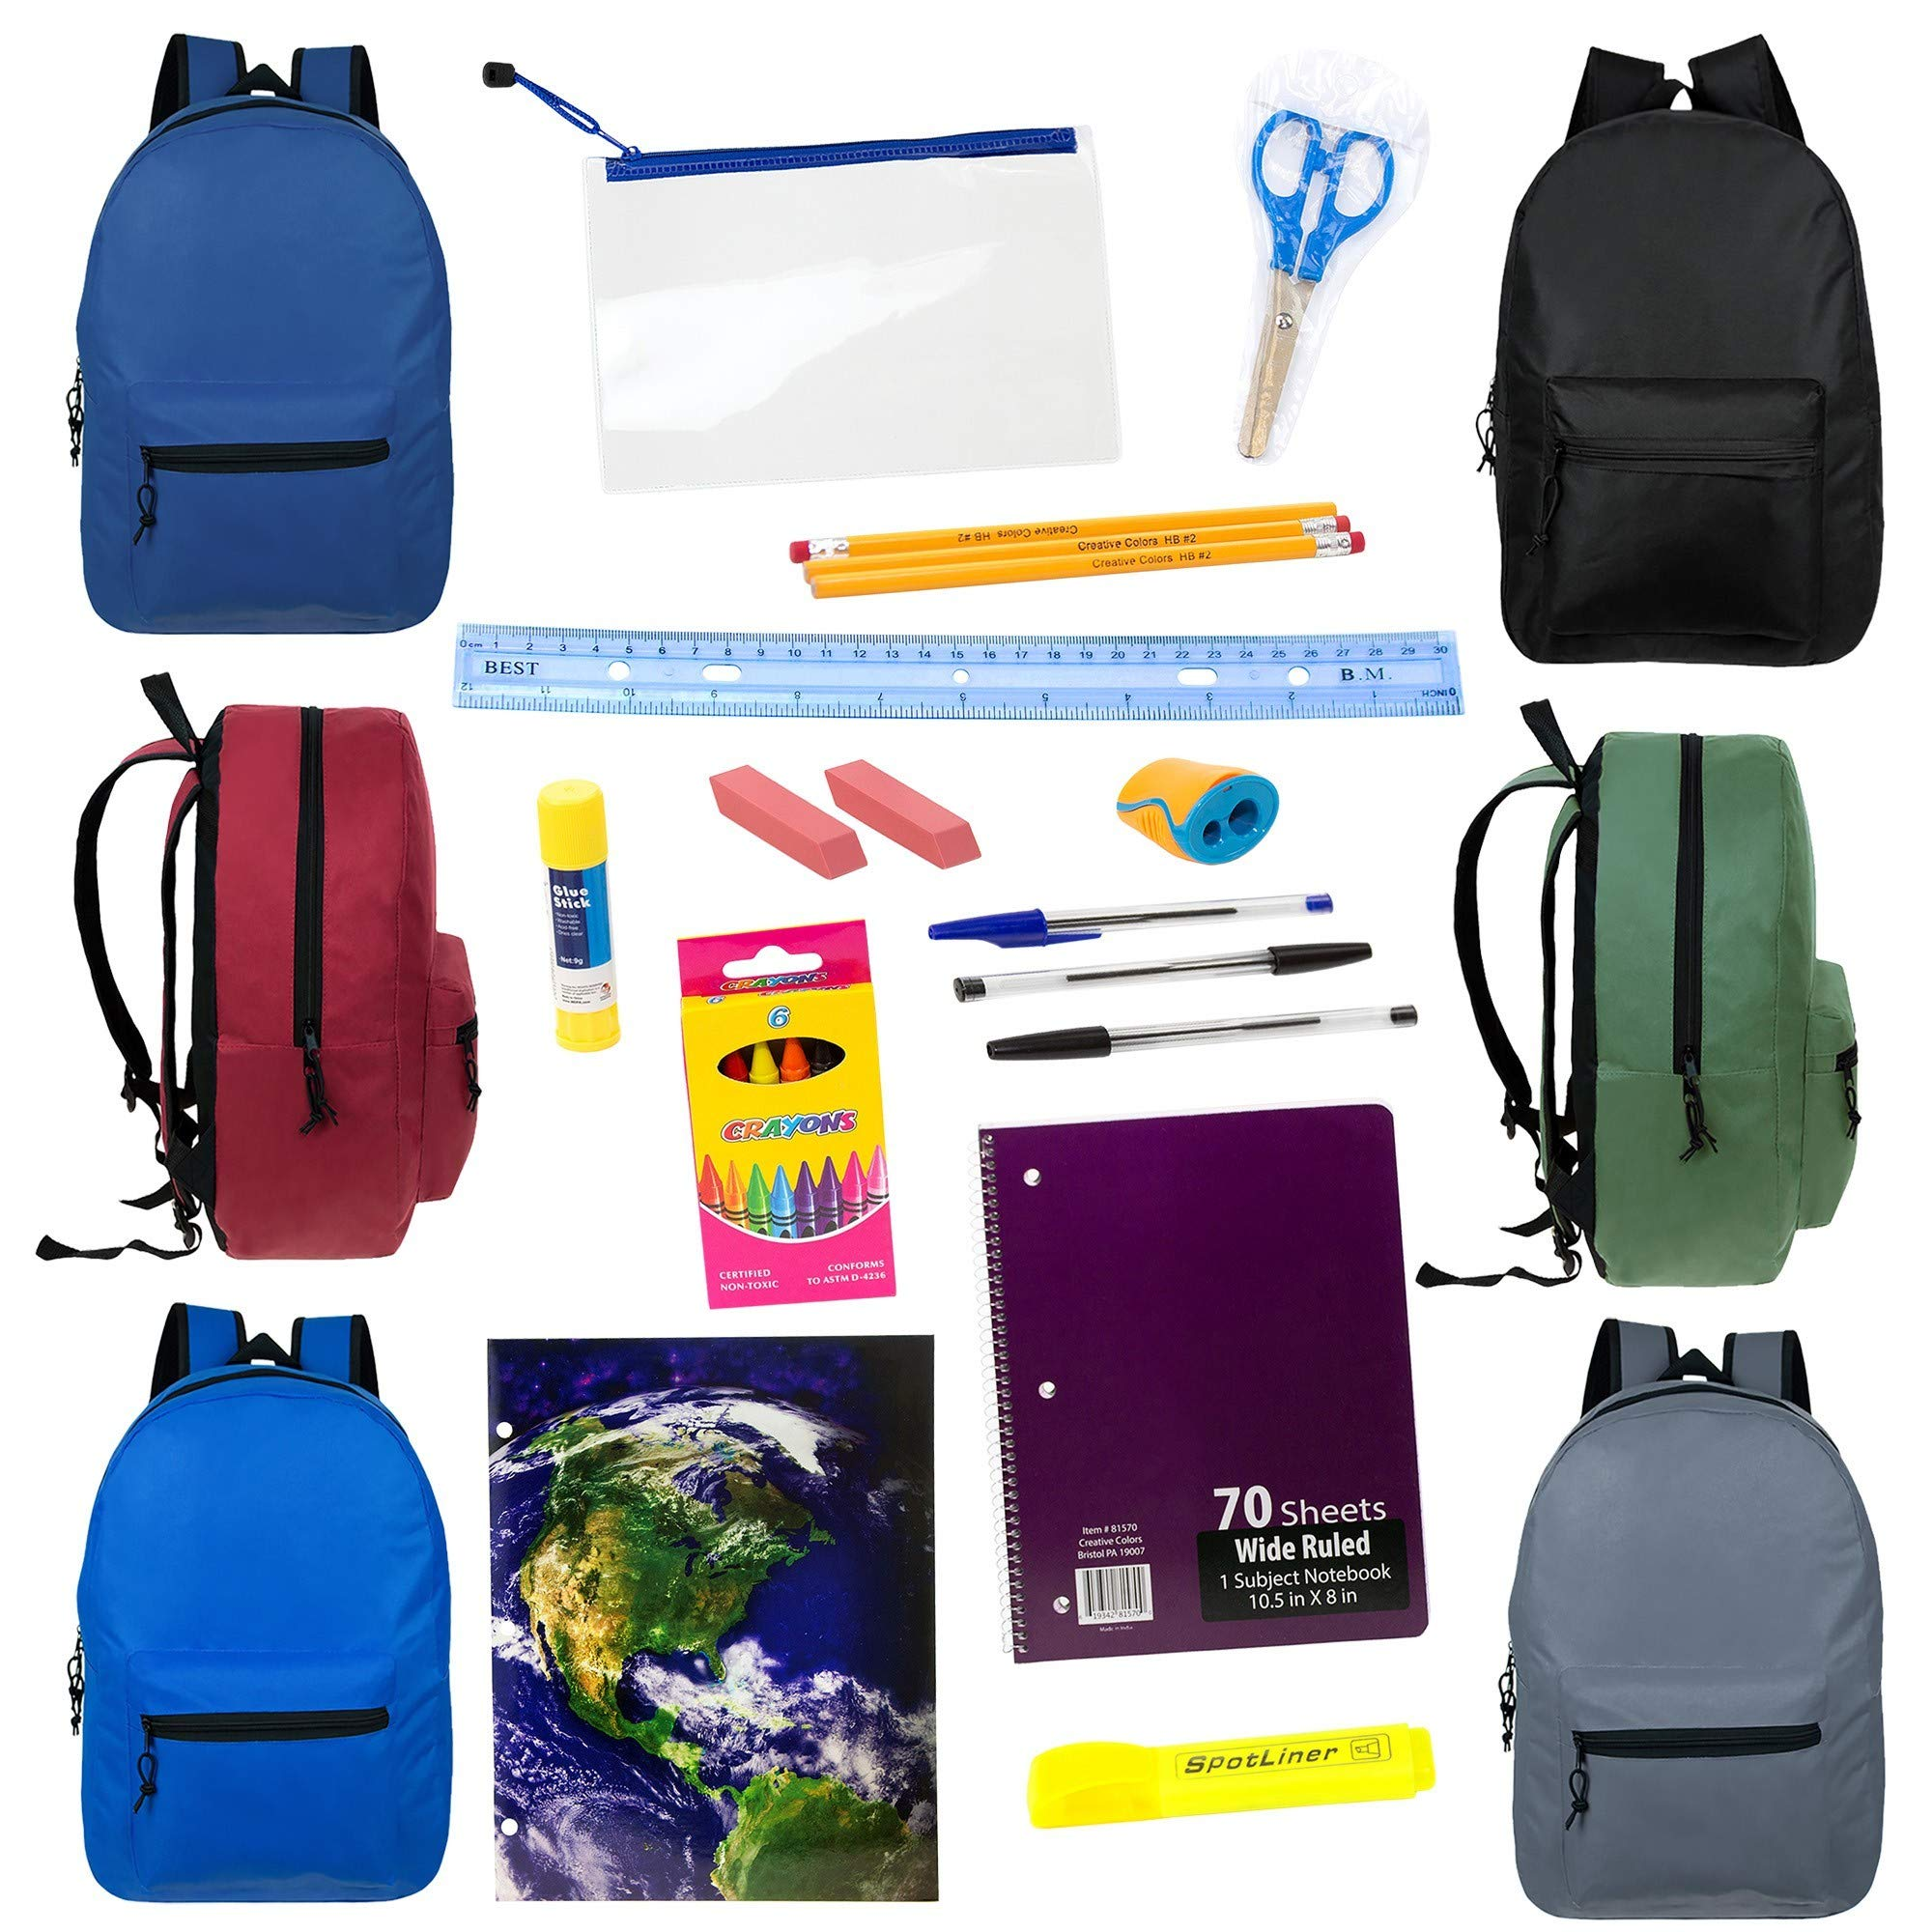 15'' Wholesale Backpacks in 6 Assorted Colors with 16 Piece School Supply Kit - Bulk Case of 24